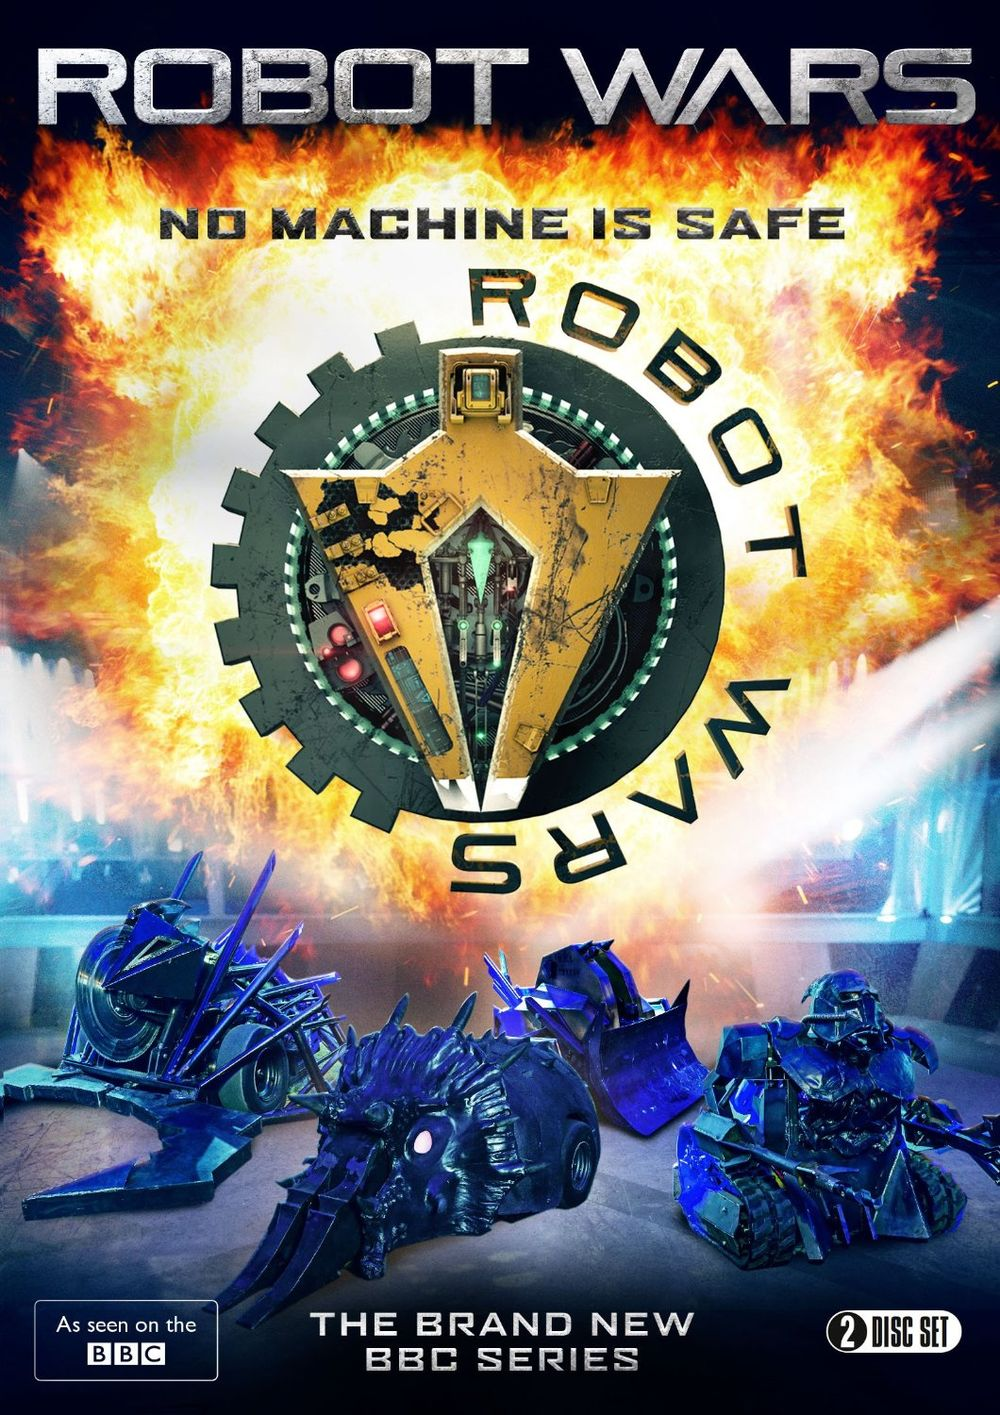 http://img5.downloadha.com/hosein/Movie/March%202017/Robot-Wars-Season-2-2017-cover-large.jpg